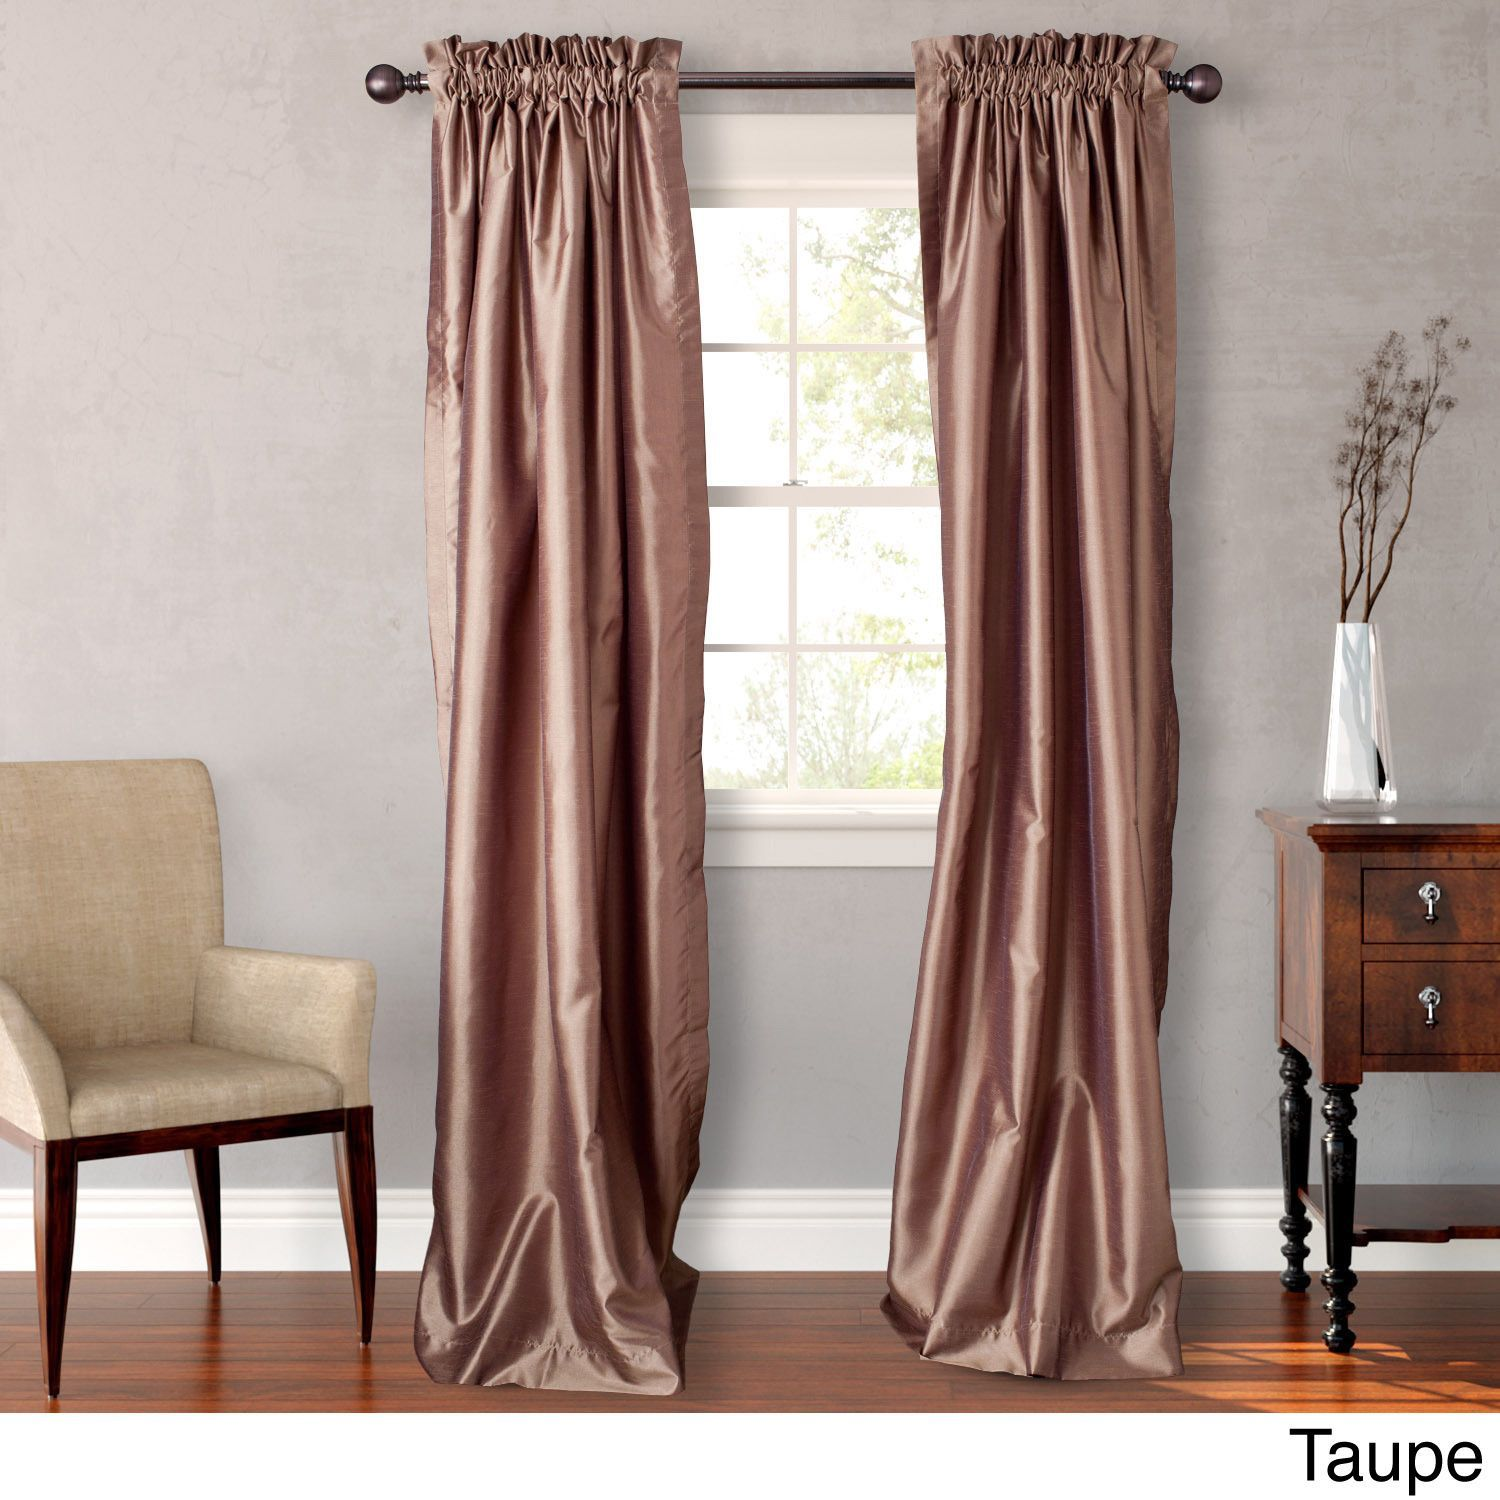 Heritage Landing Faux Silk 96 Inch D Are Available In 5 Vibrant Colors The Lined Drape Panels Add Drama And Complete Room S Decor